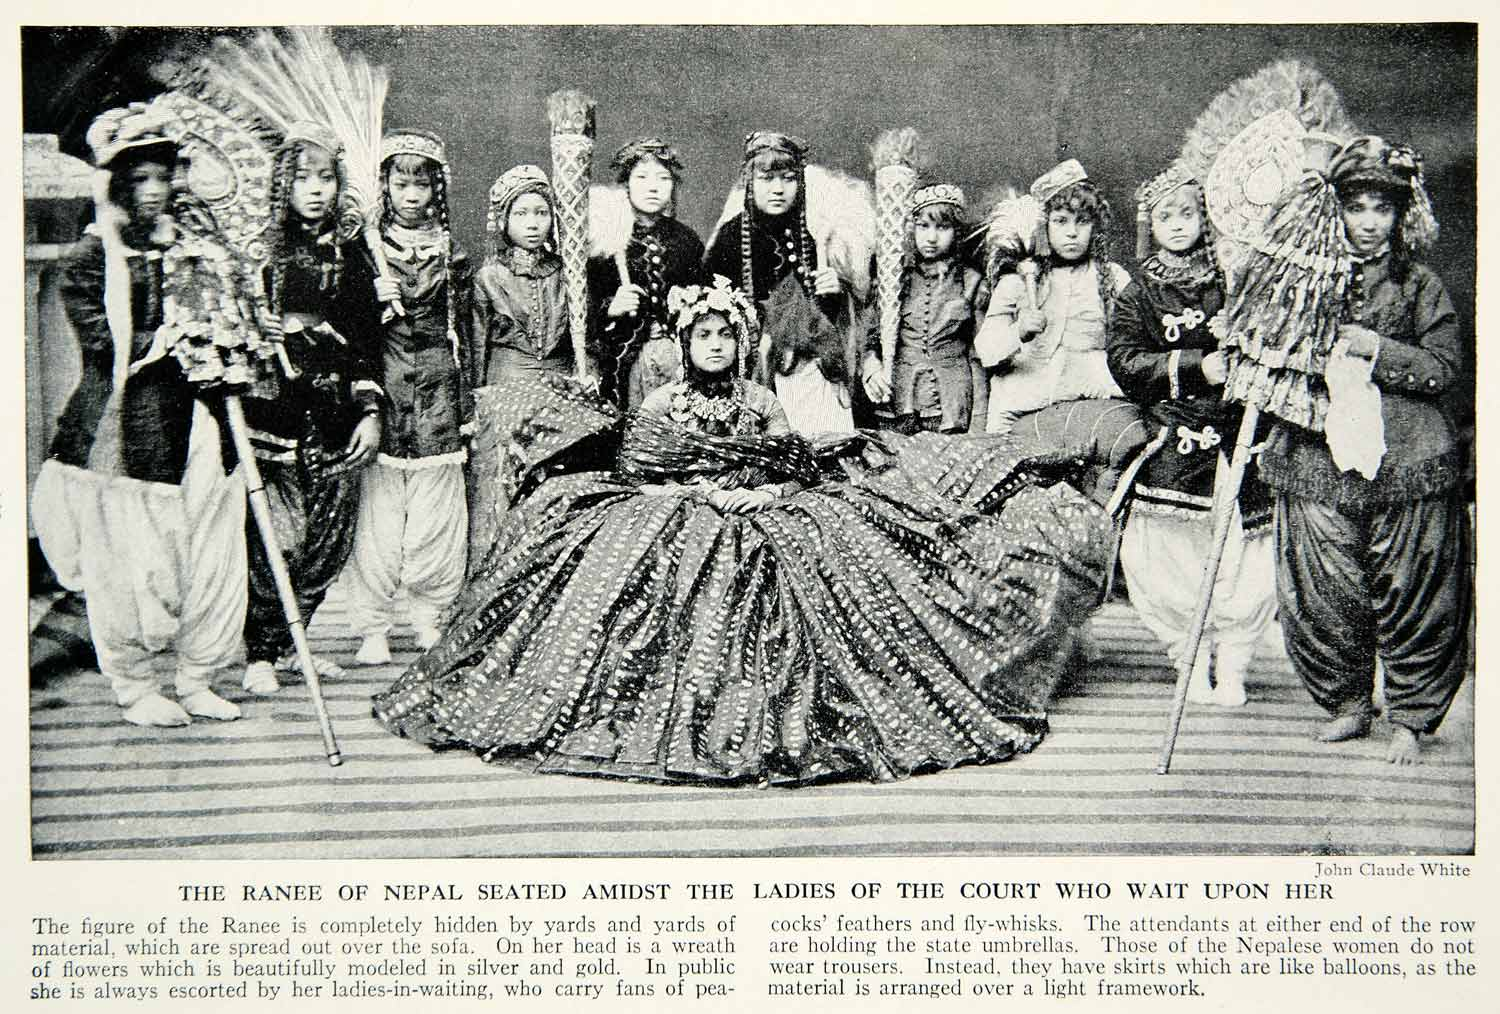 1938 Print Ranee Queen Nepal Court Ladies Royalty Historical Traditional XGGD4